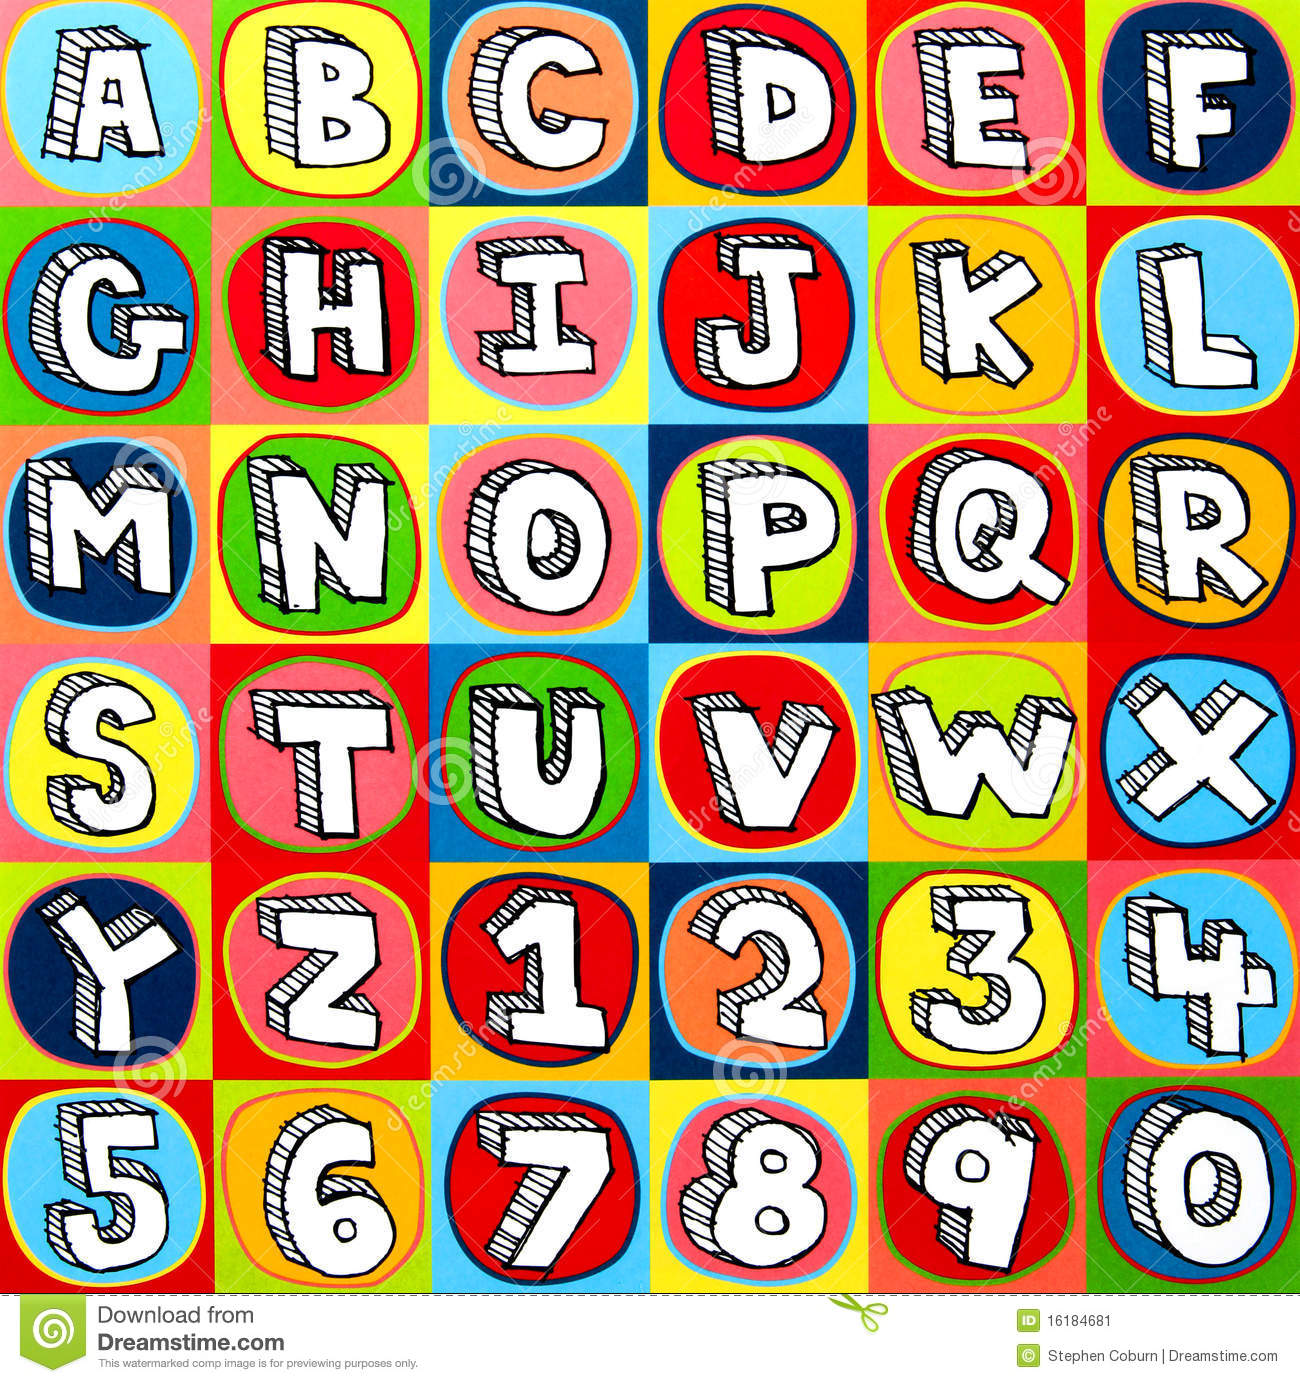 Colorful Alphabet Letters And Numbers Stock Image - Image: 16184681 The Letter C In Blue Bubble Letters